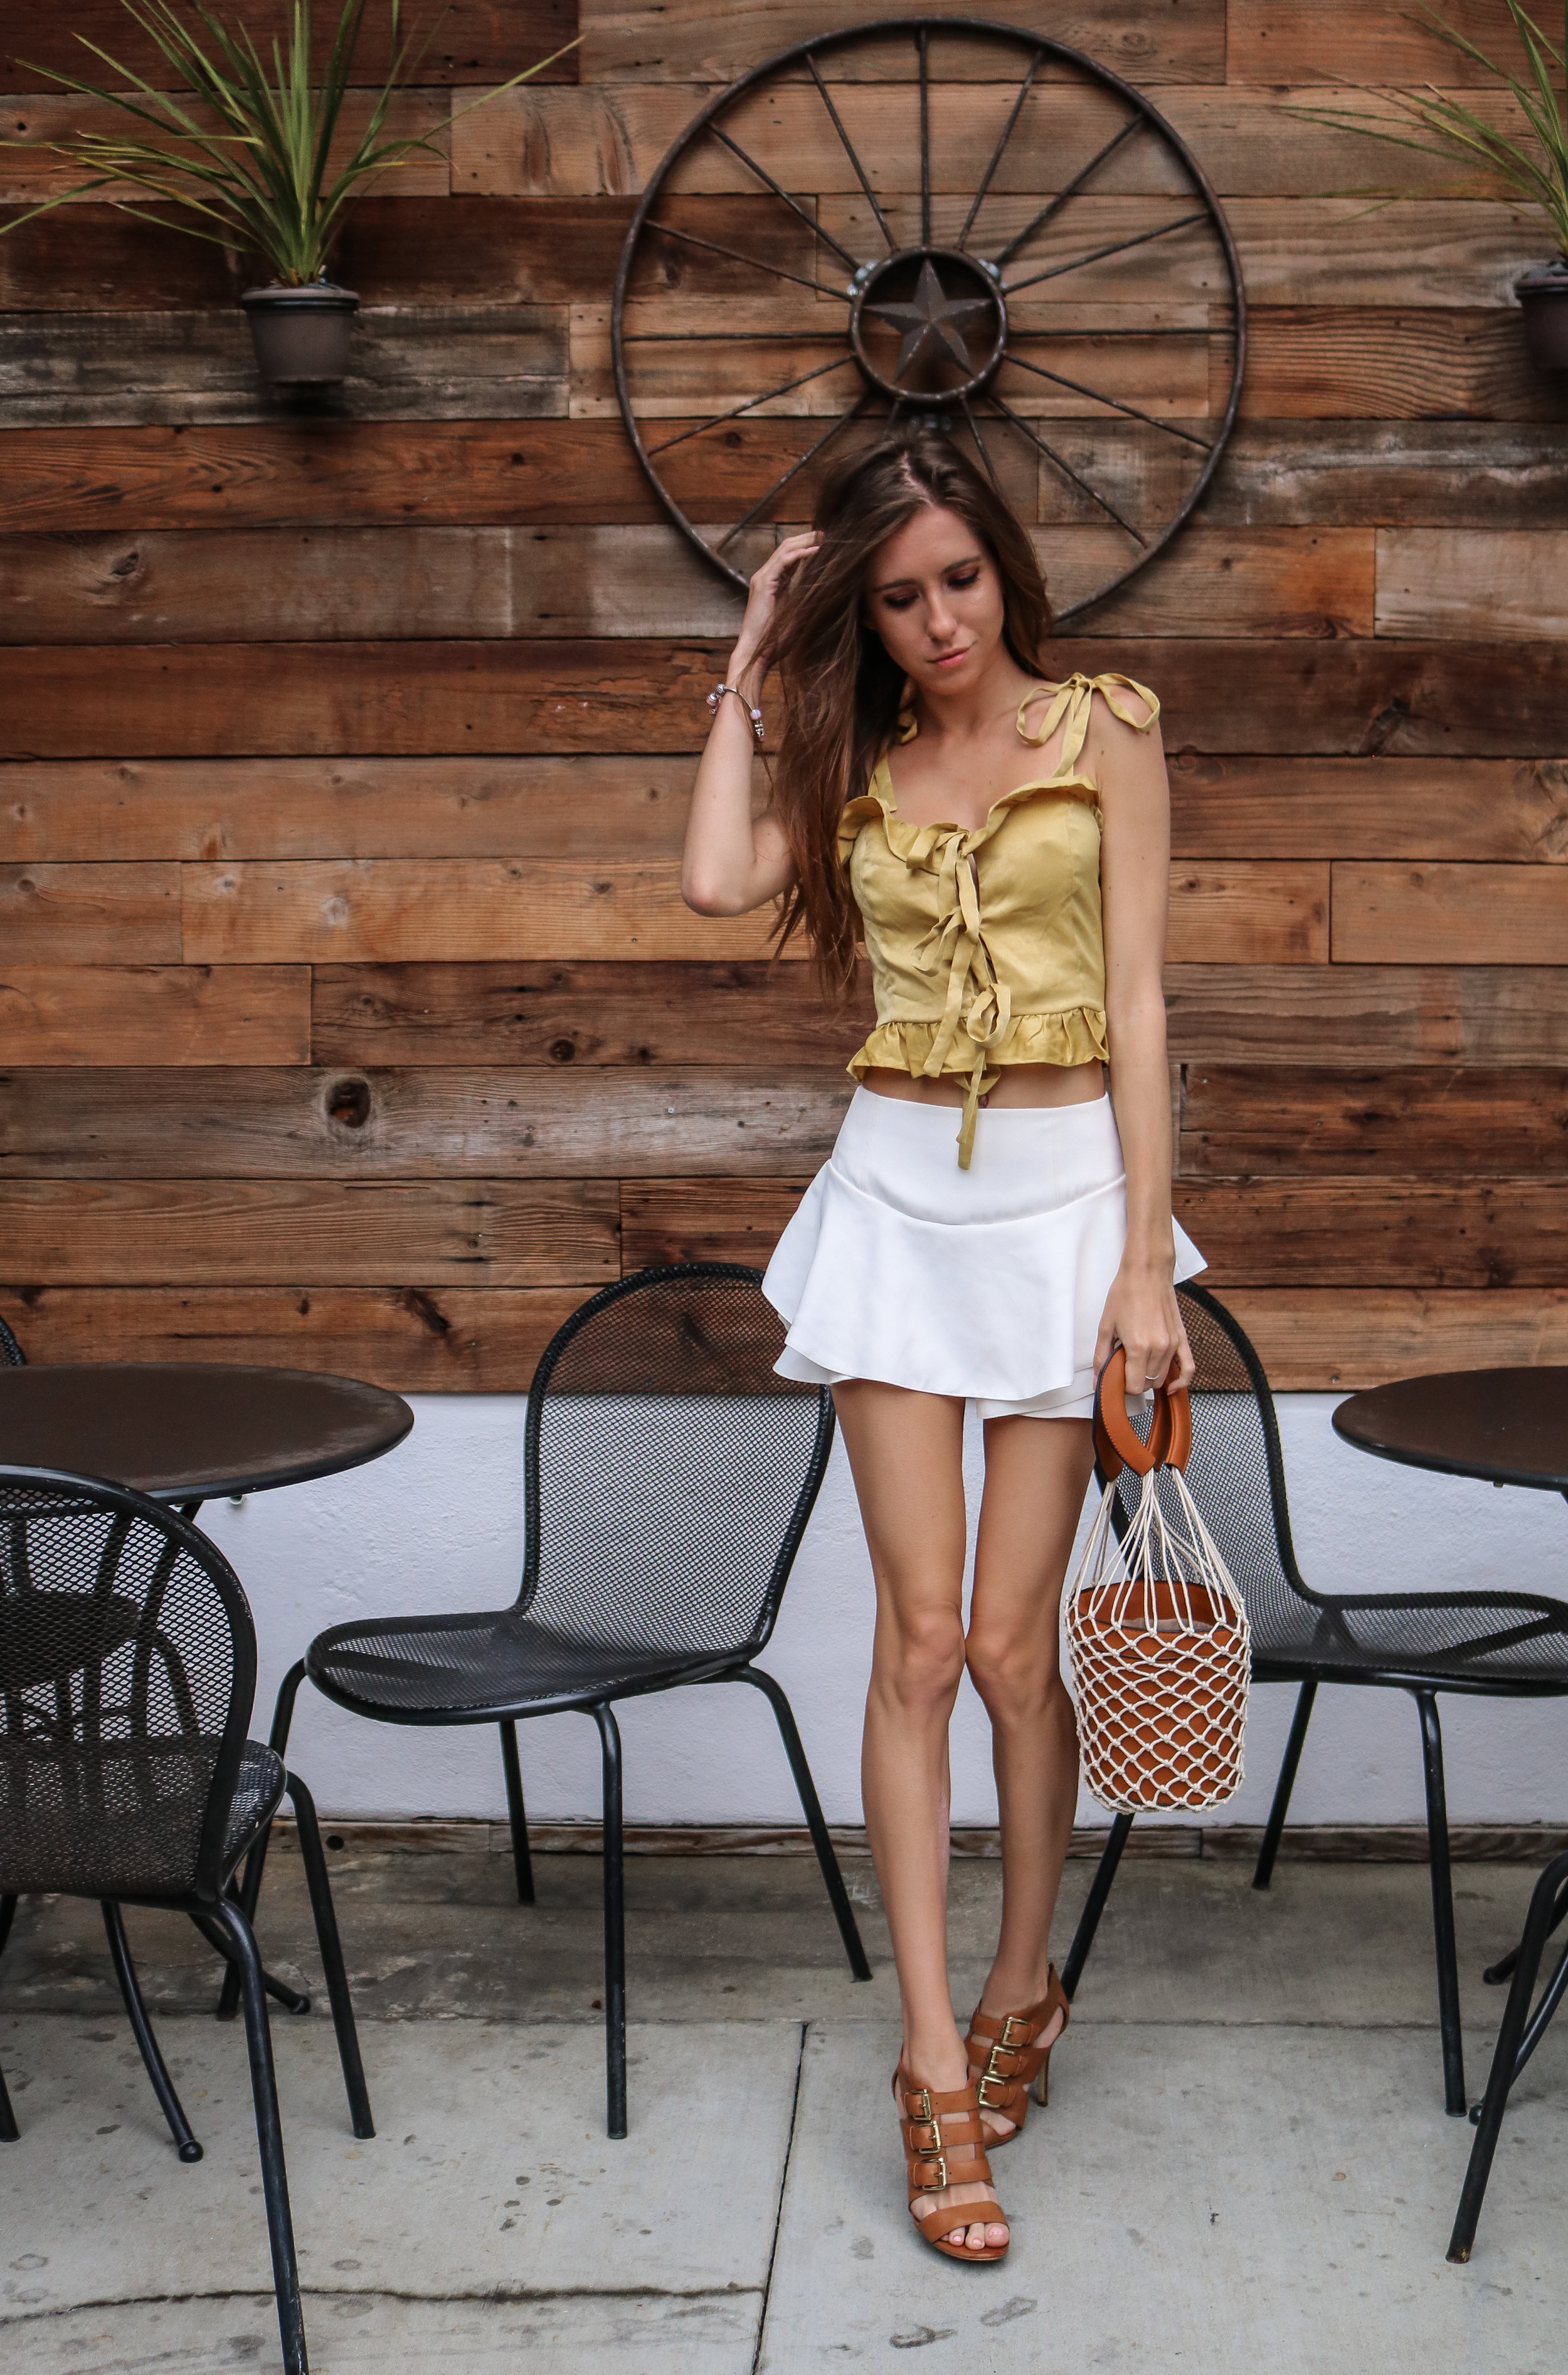 The Hungarian Brunette Yellow satin top and net bag (10 of 12).jpg